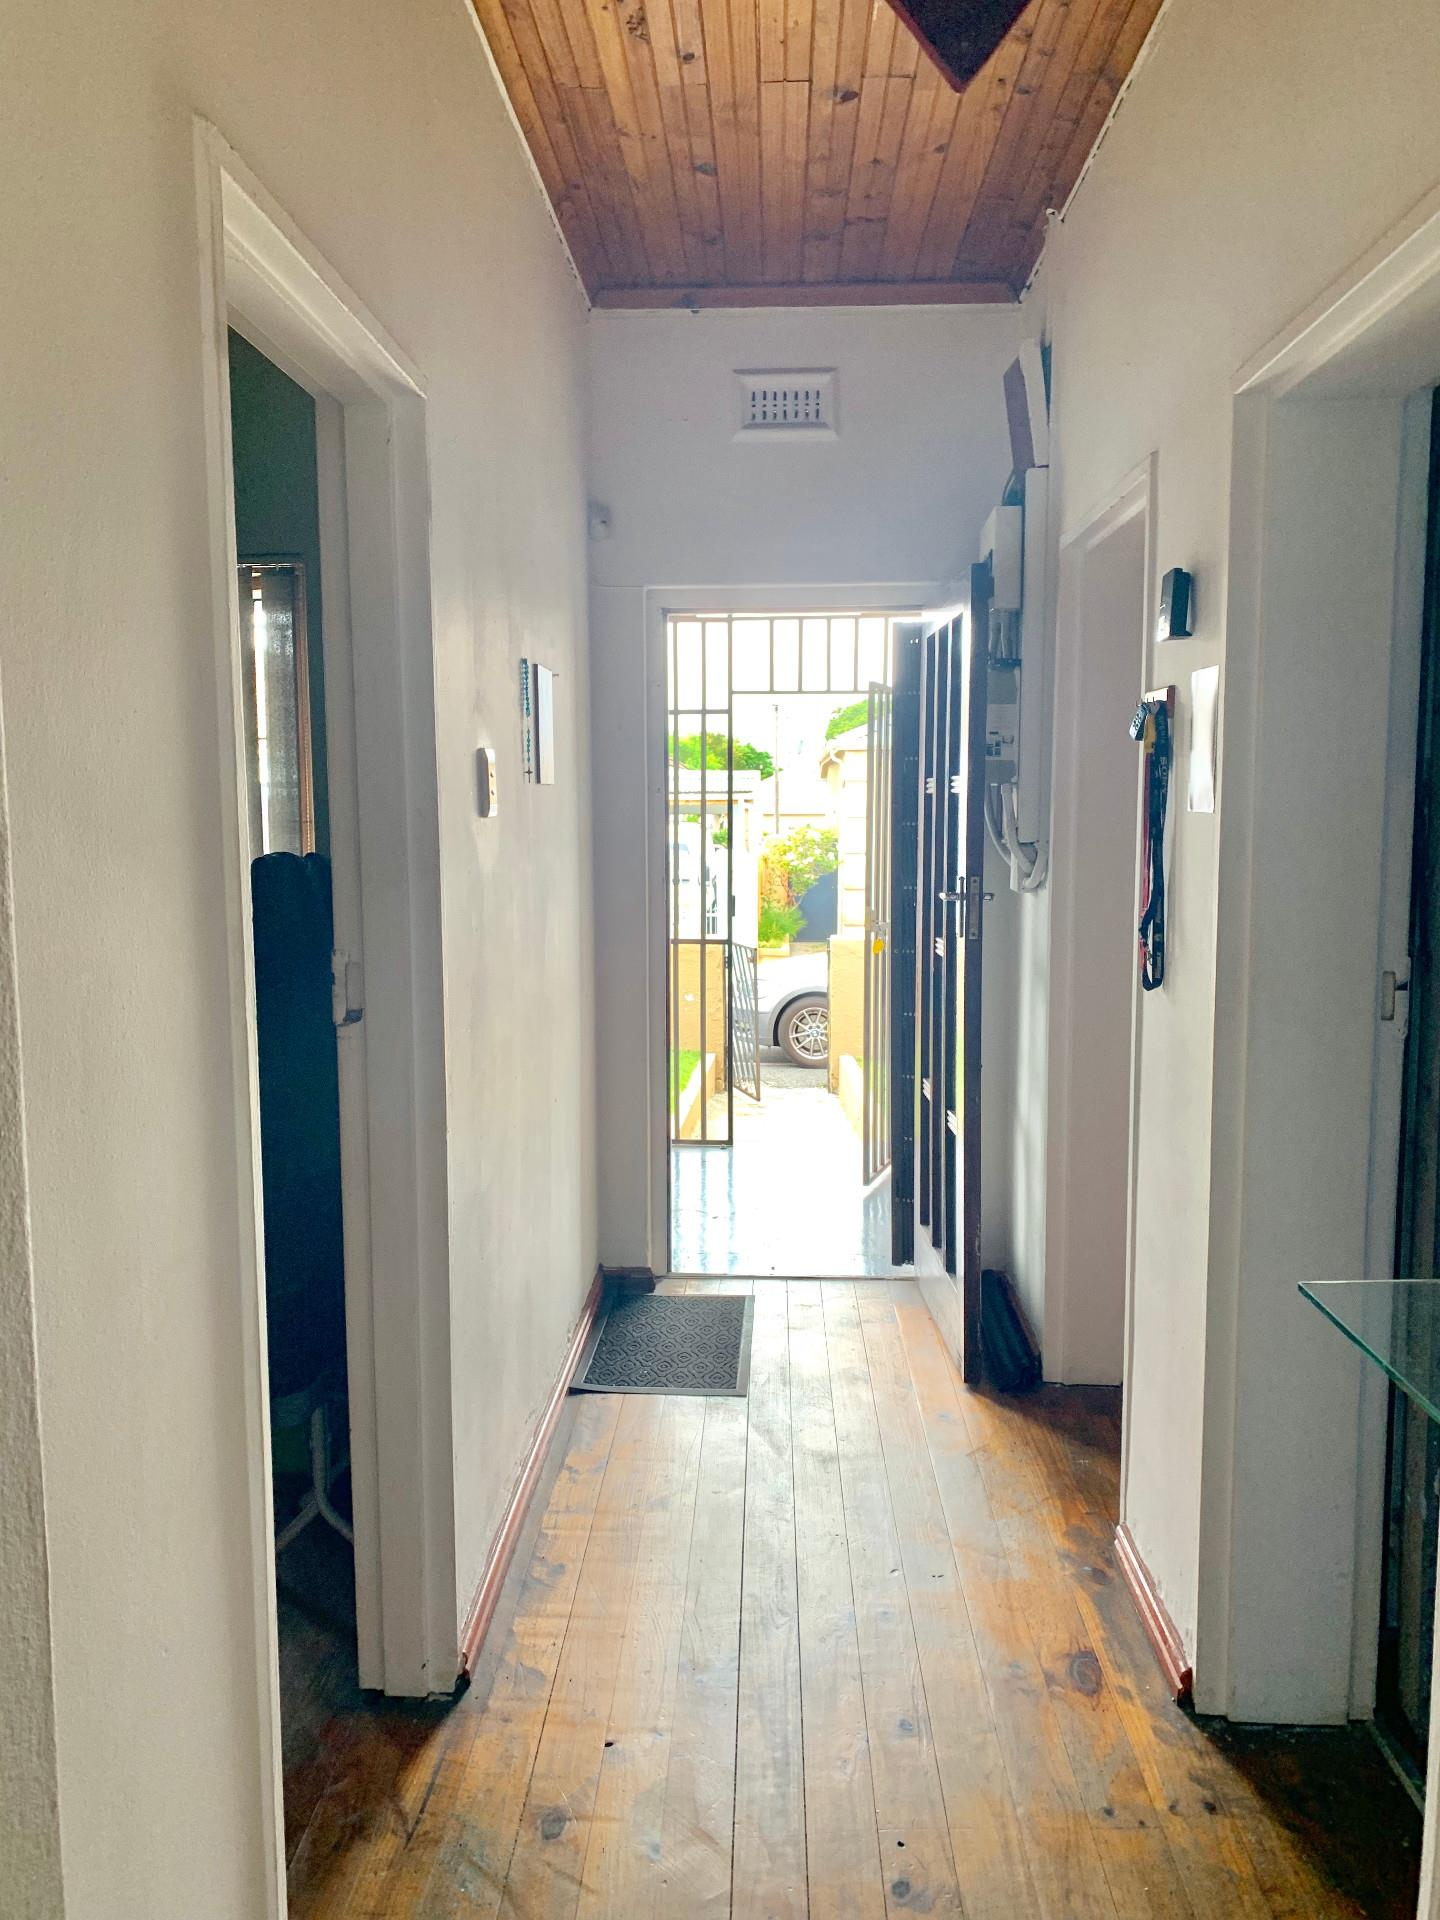 3 Bedroom House For Sale in Wynberg